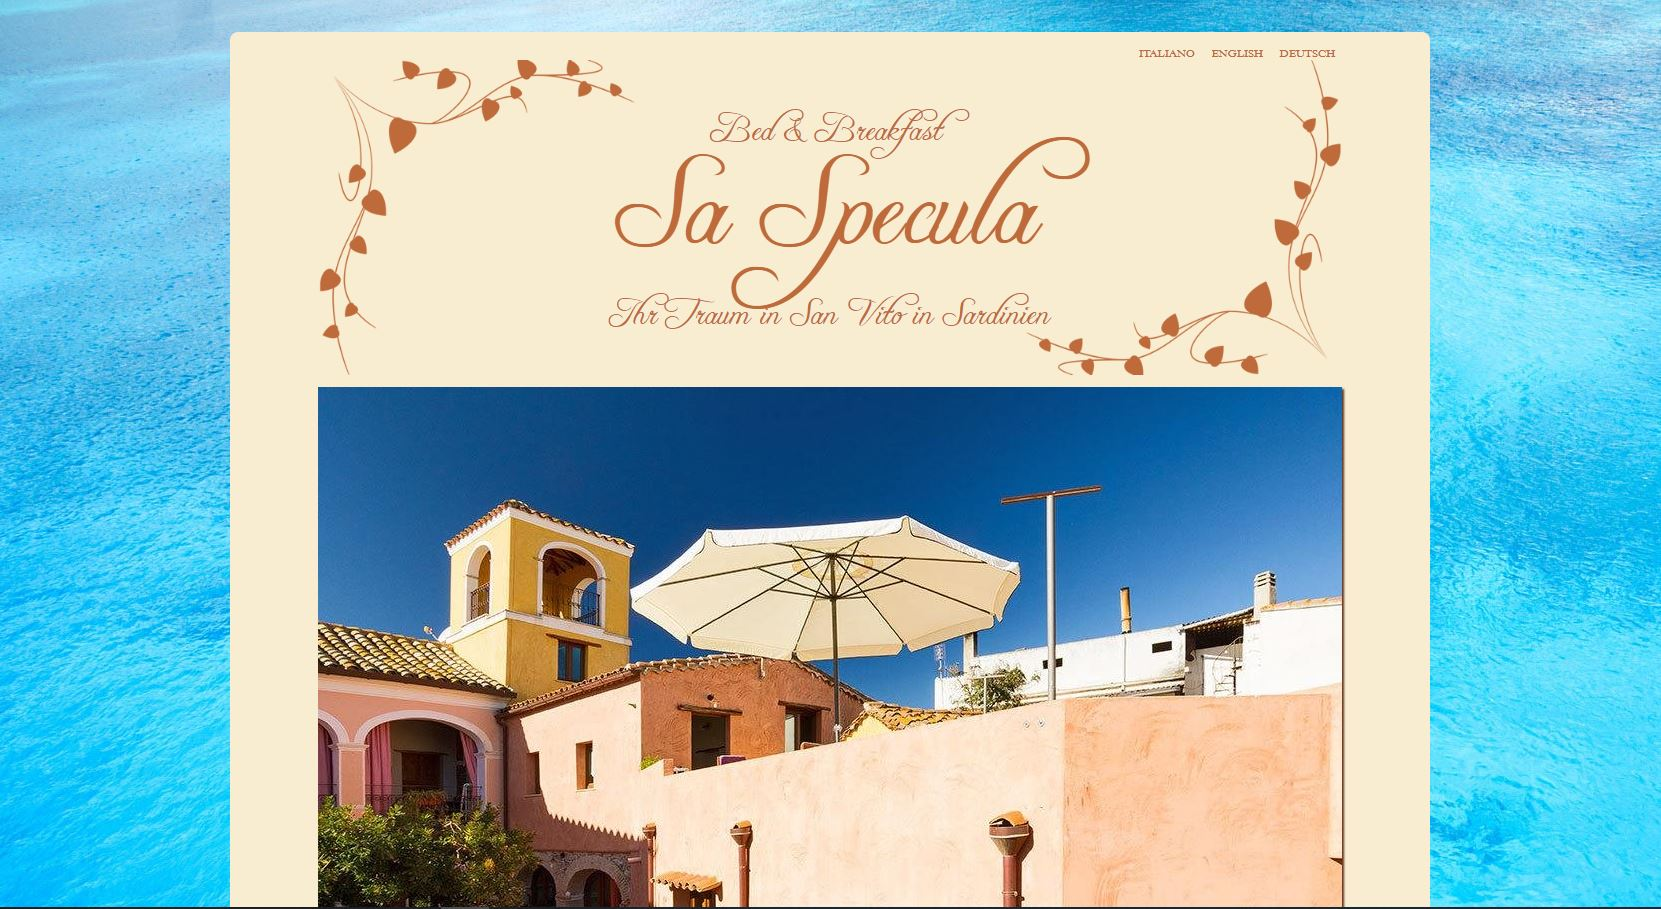 Titelseite der Website des Bed and Breakfast Sa Specula in San Vito, Sardinien